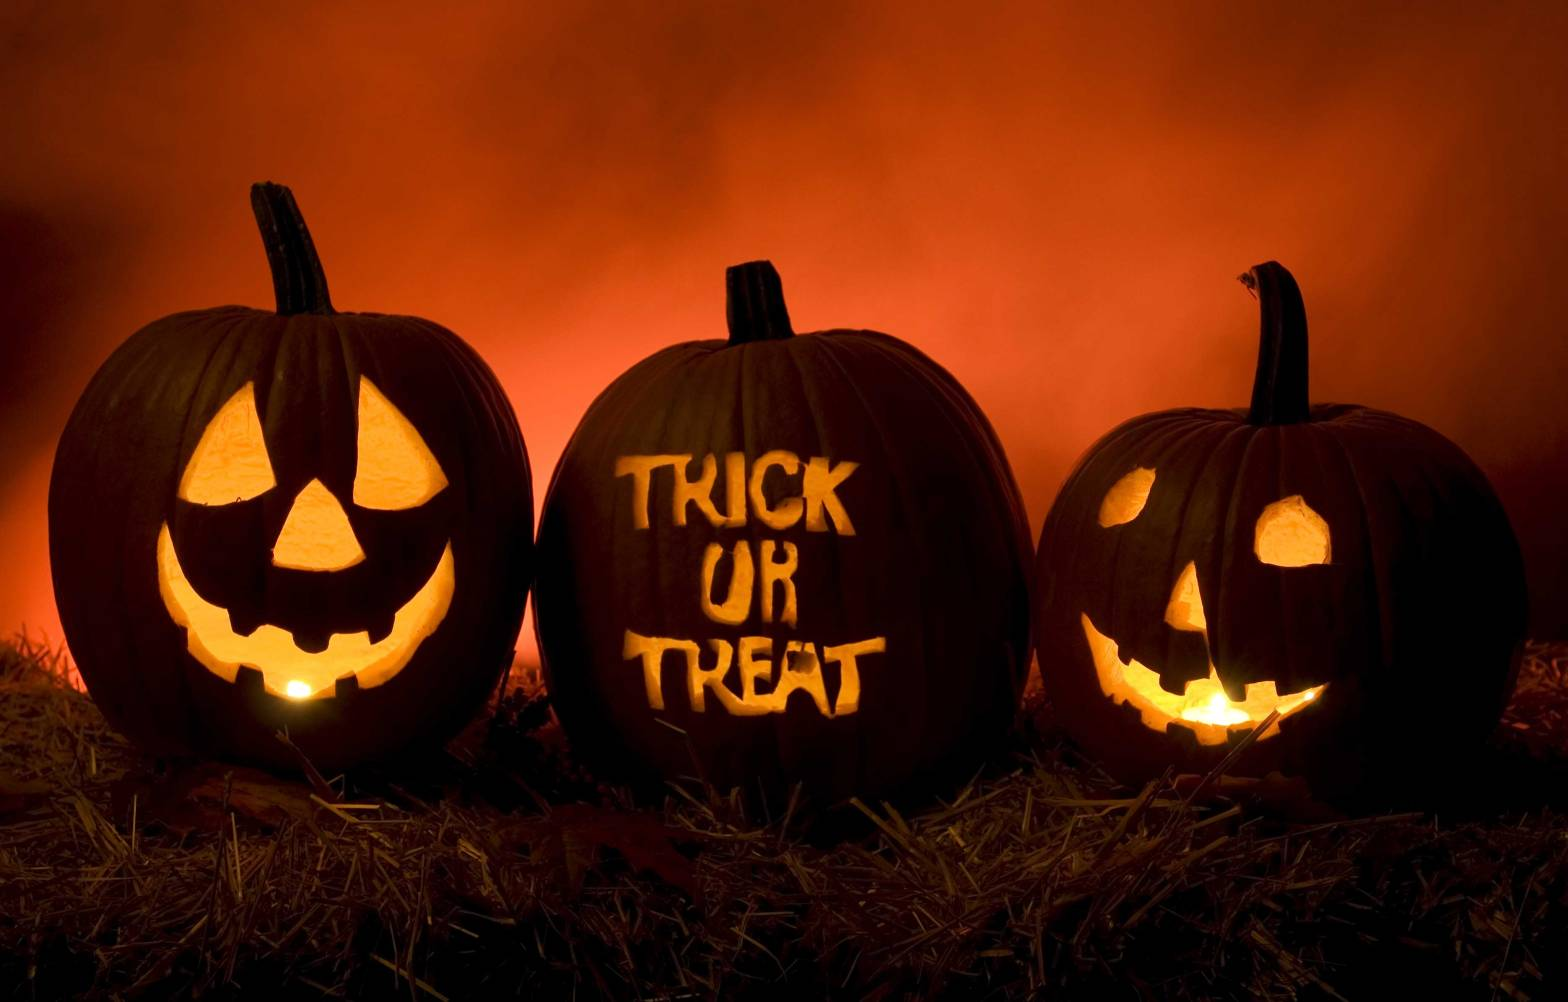 https://www.mystateline.com/news/local-news/rockford-sets-trick-or-treating-hours-for-halloween/